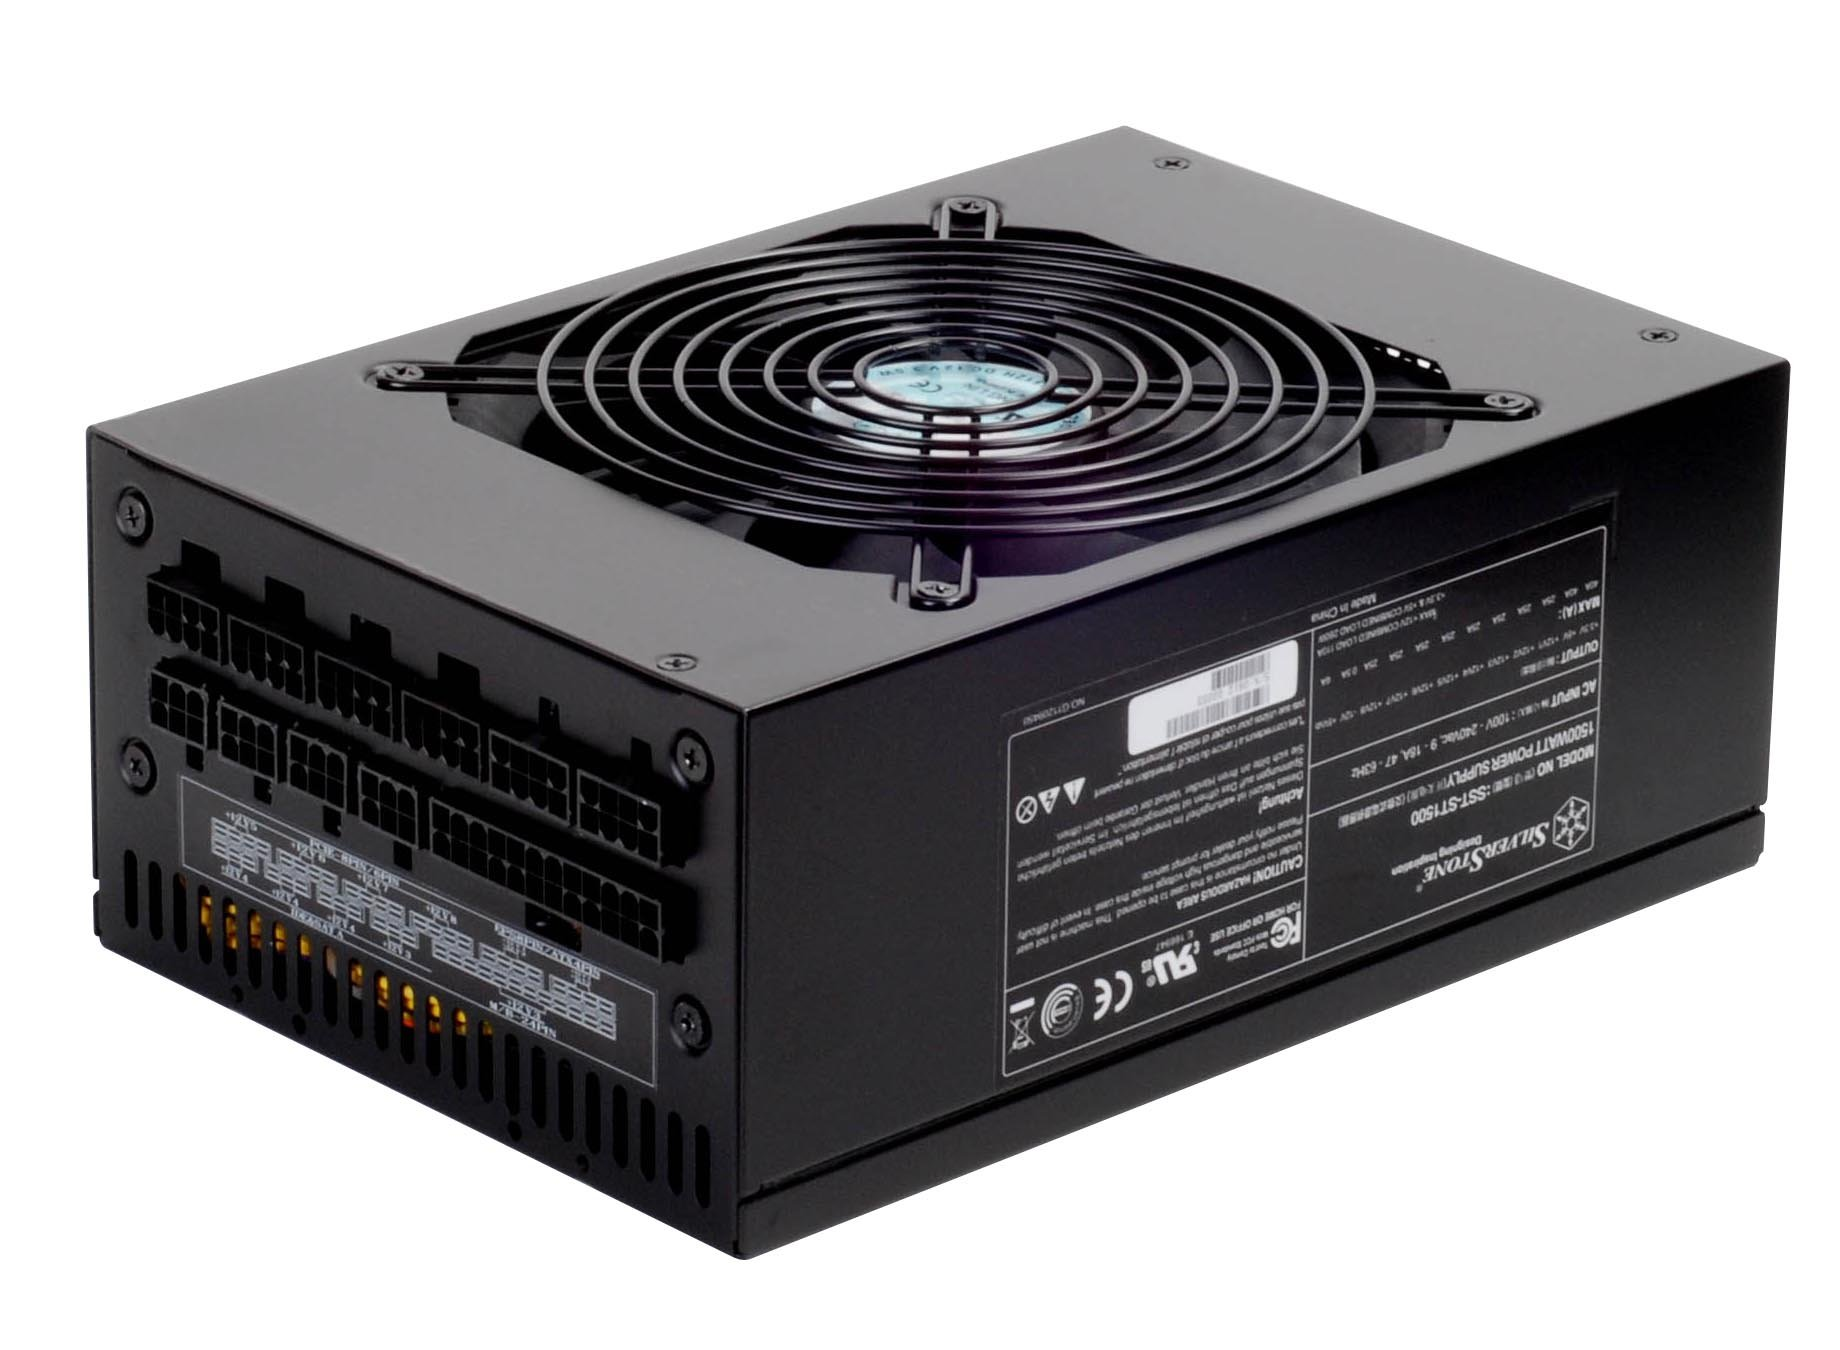 Silverstone Tek 1500W ATX12V/EPS12V SLI Ready CrossFire Ready 80 PLUS Silver Certified Modular Active PFC Power Supply (ST1500) by SilverStone Technology